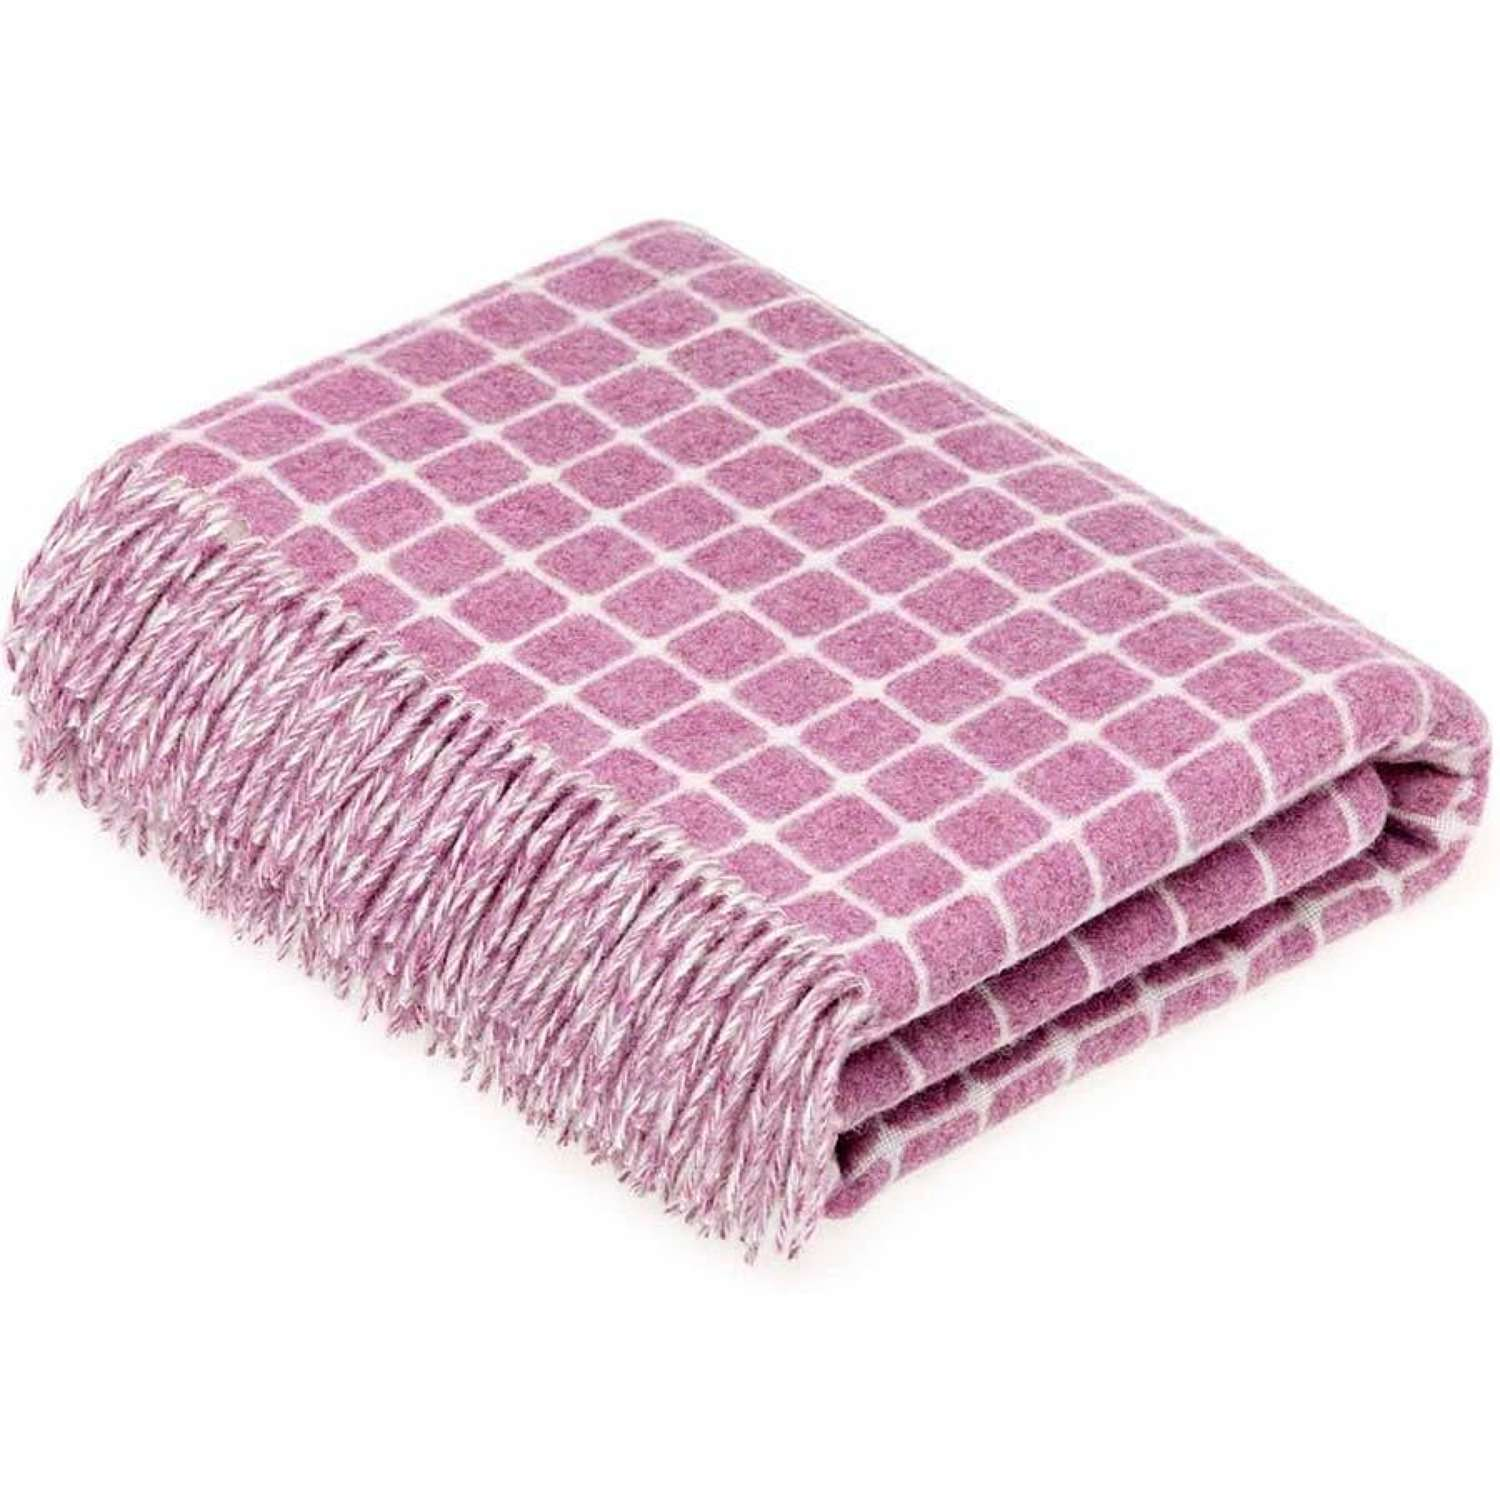 Bronte By Moon throw, or picnic rug